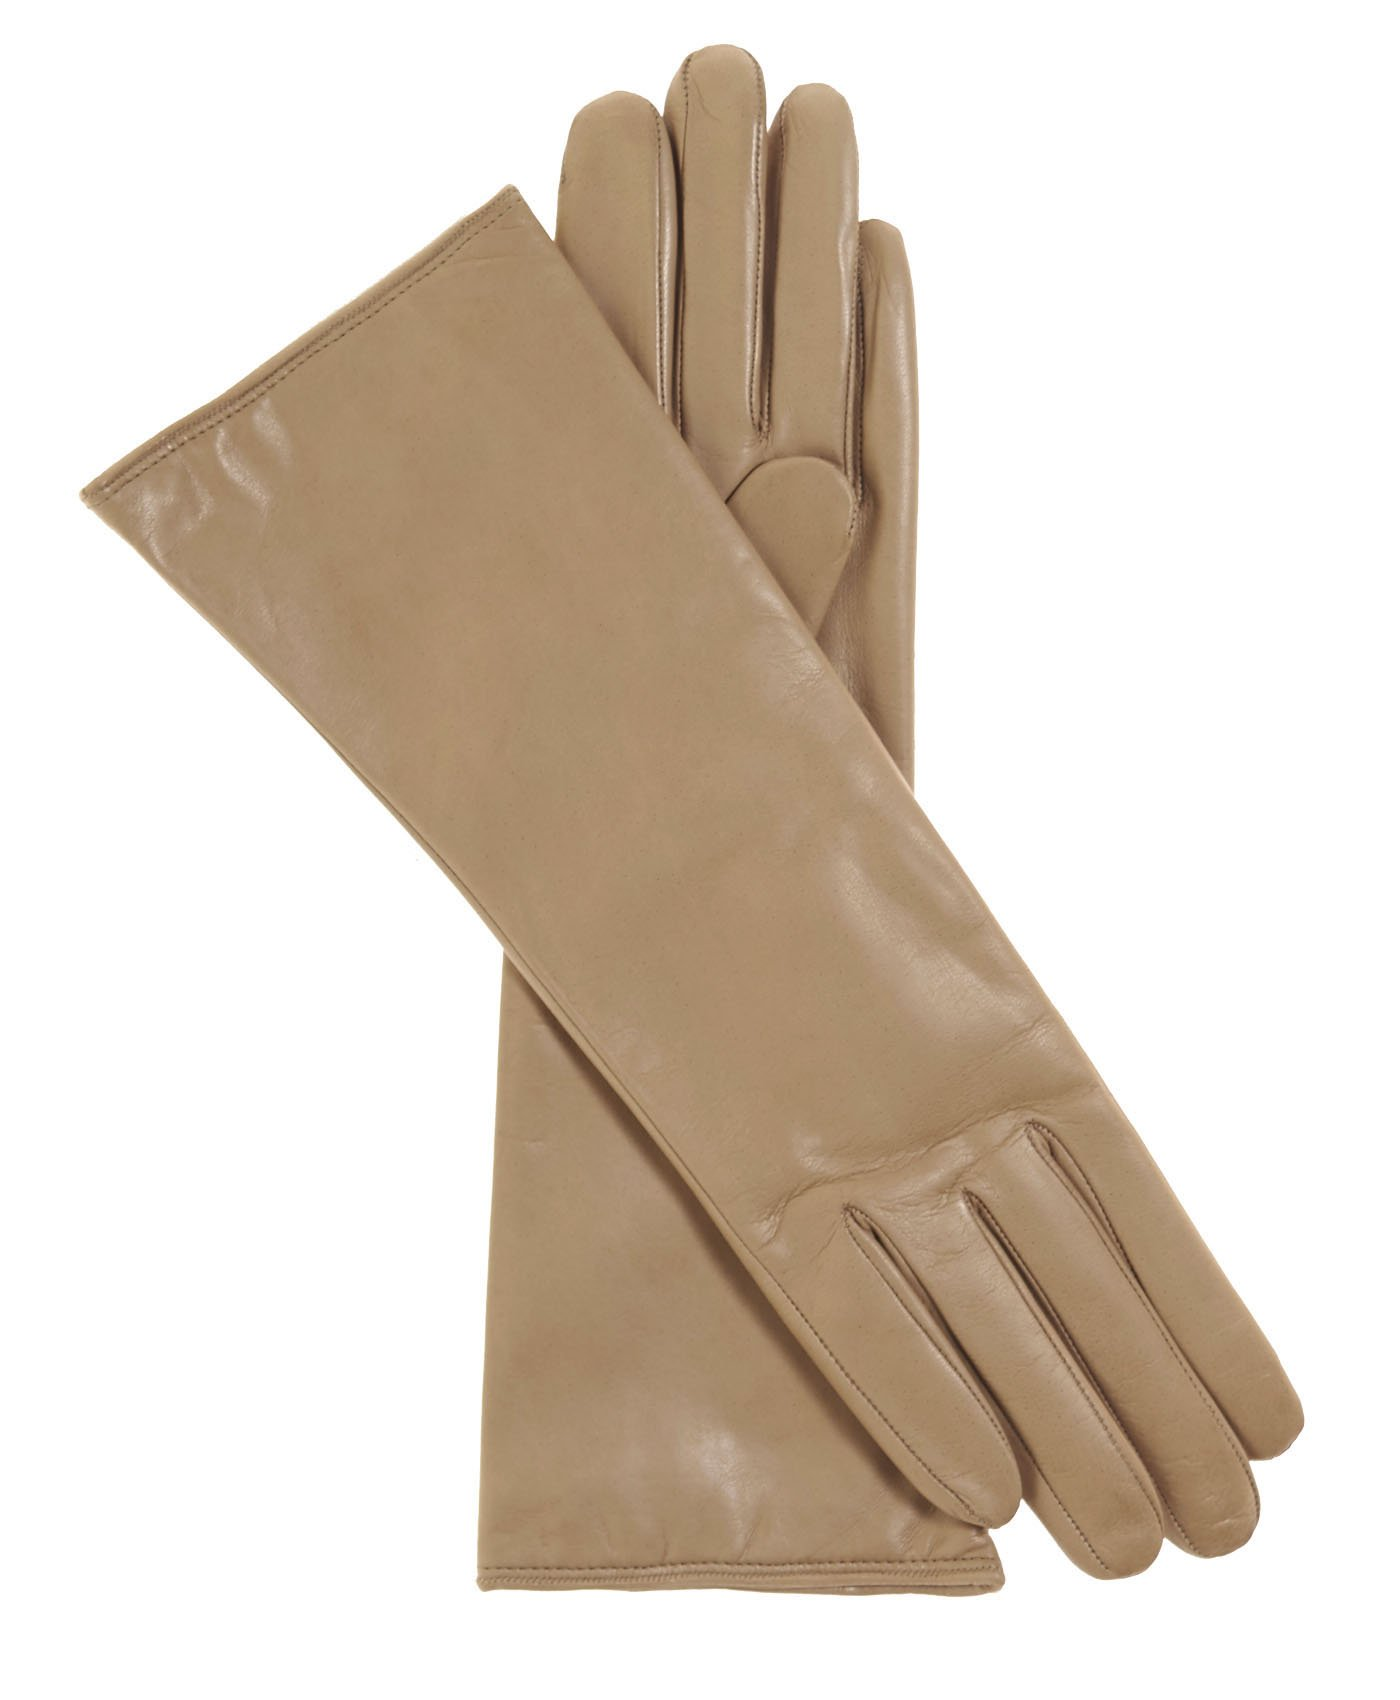 Fratelli Orsini Women's Italian ''4 Button Length'' Cashmere Lined Leather Gloves Size 6 1/2 Color Beige